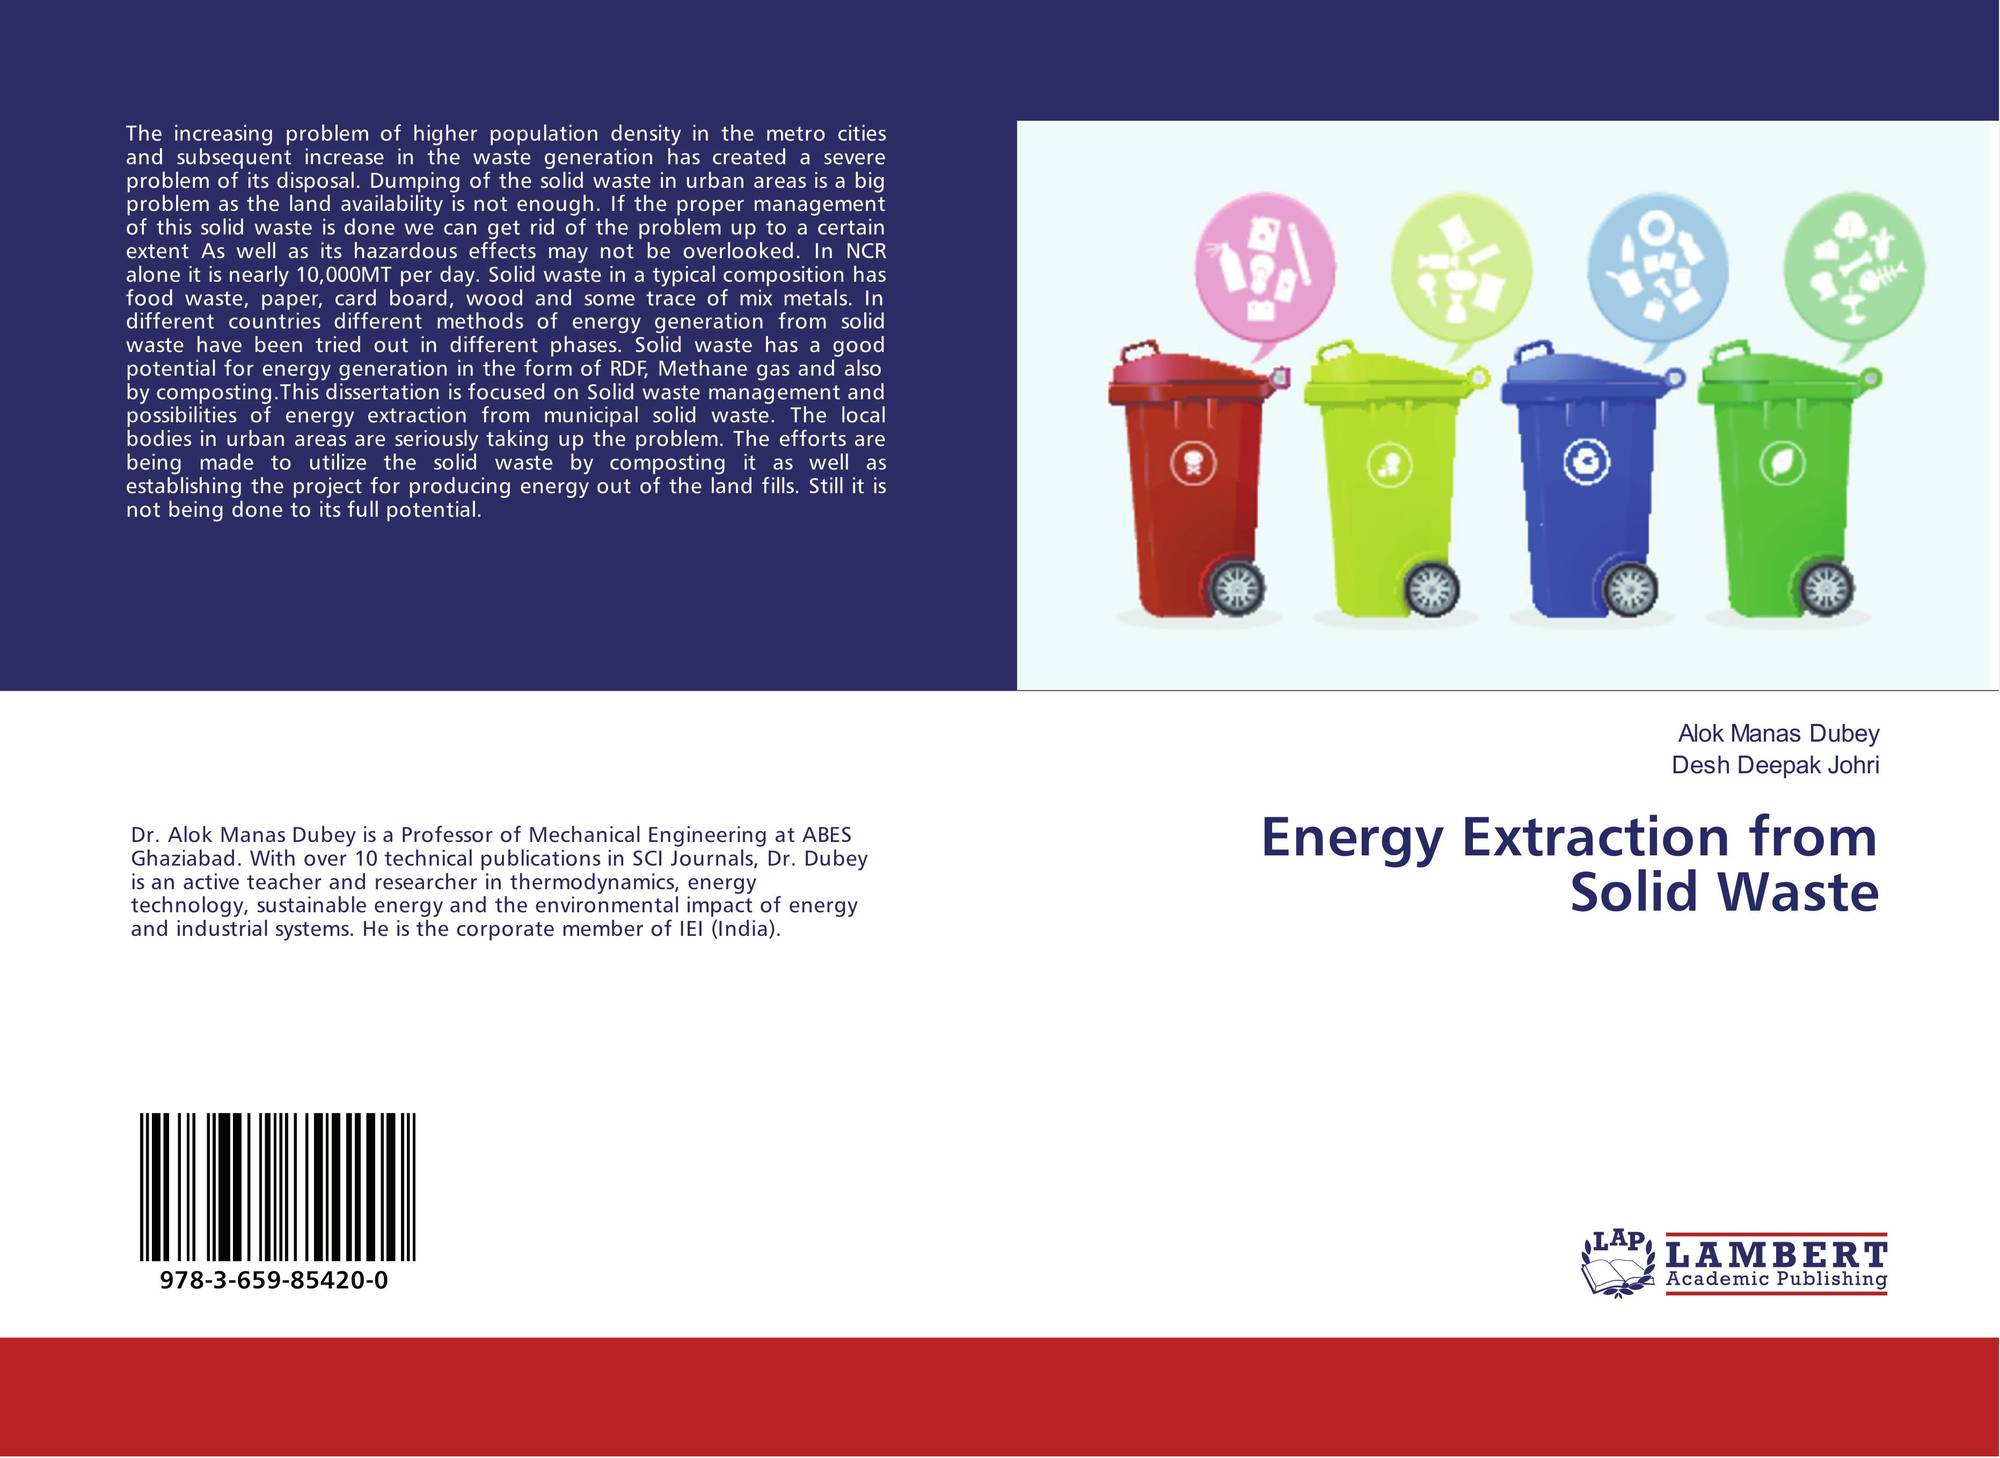 solid waste Chapter 3: solid waste disposal 2006 ipcc guidelines for national greenhouse gas inventories 33 contents 3 solid waste disposal 31 introduction  36.